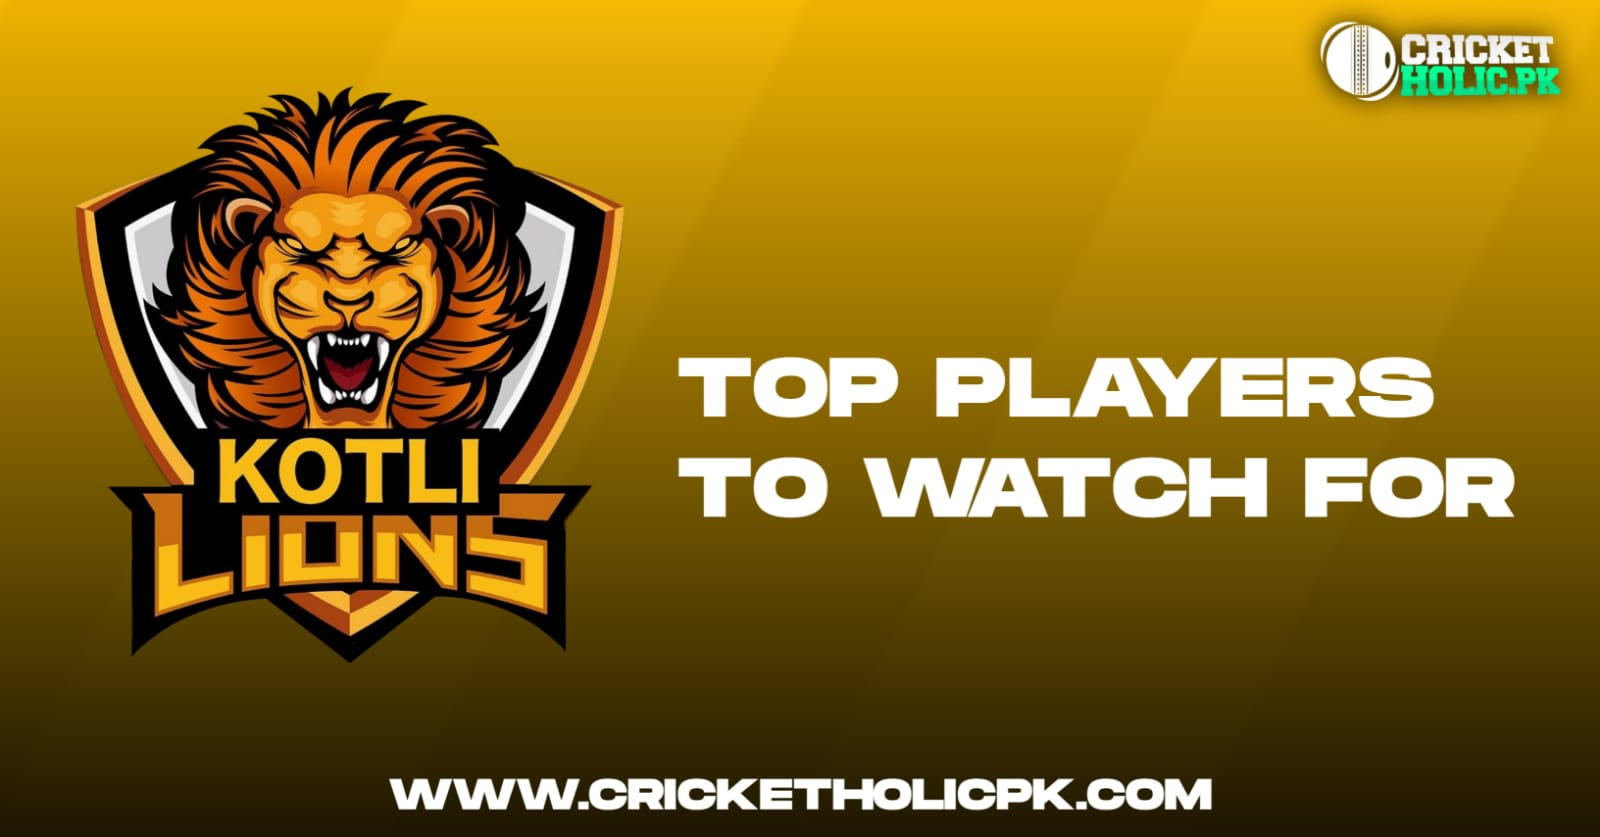 Kotli Lions' top players to watch for in KPL 2021